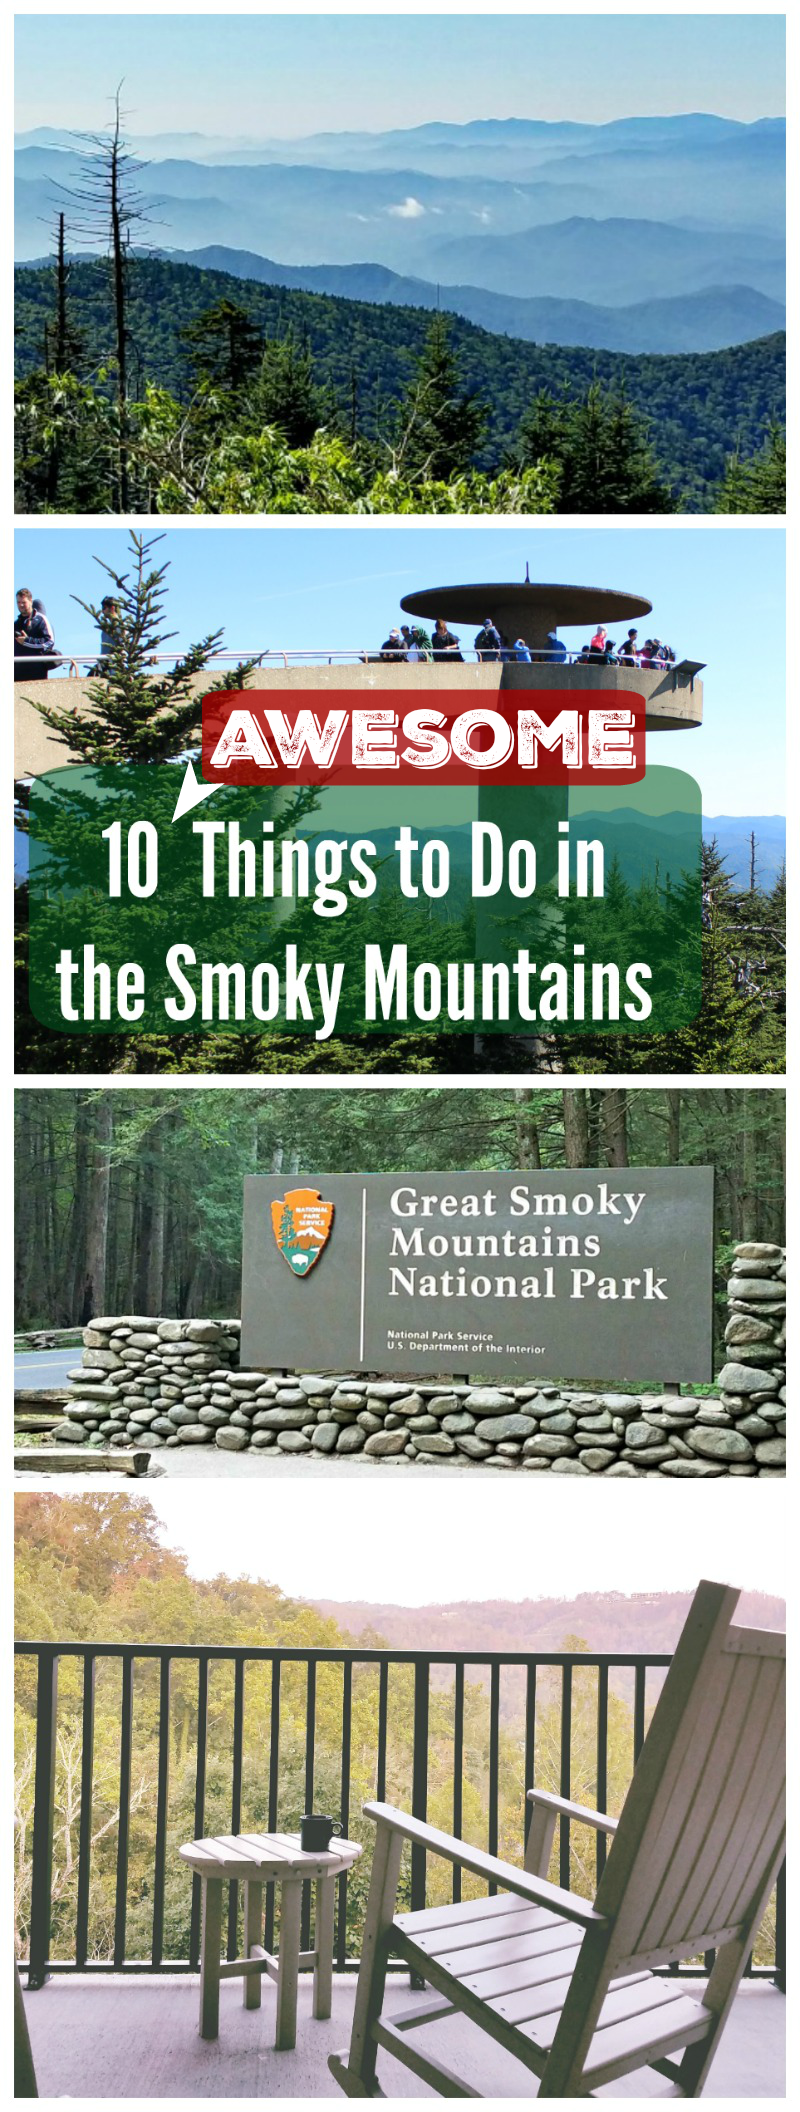 10 Best Things to do in the Smokies